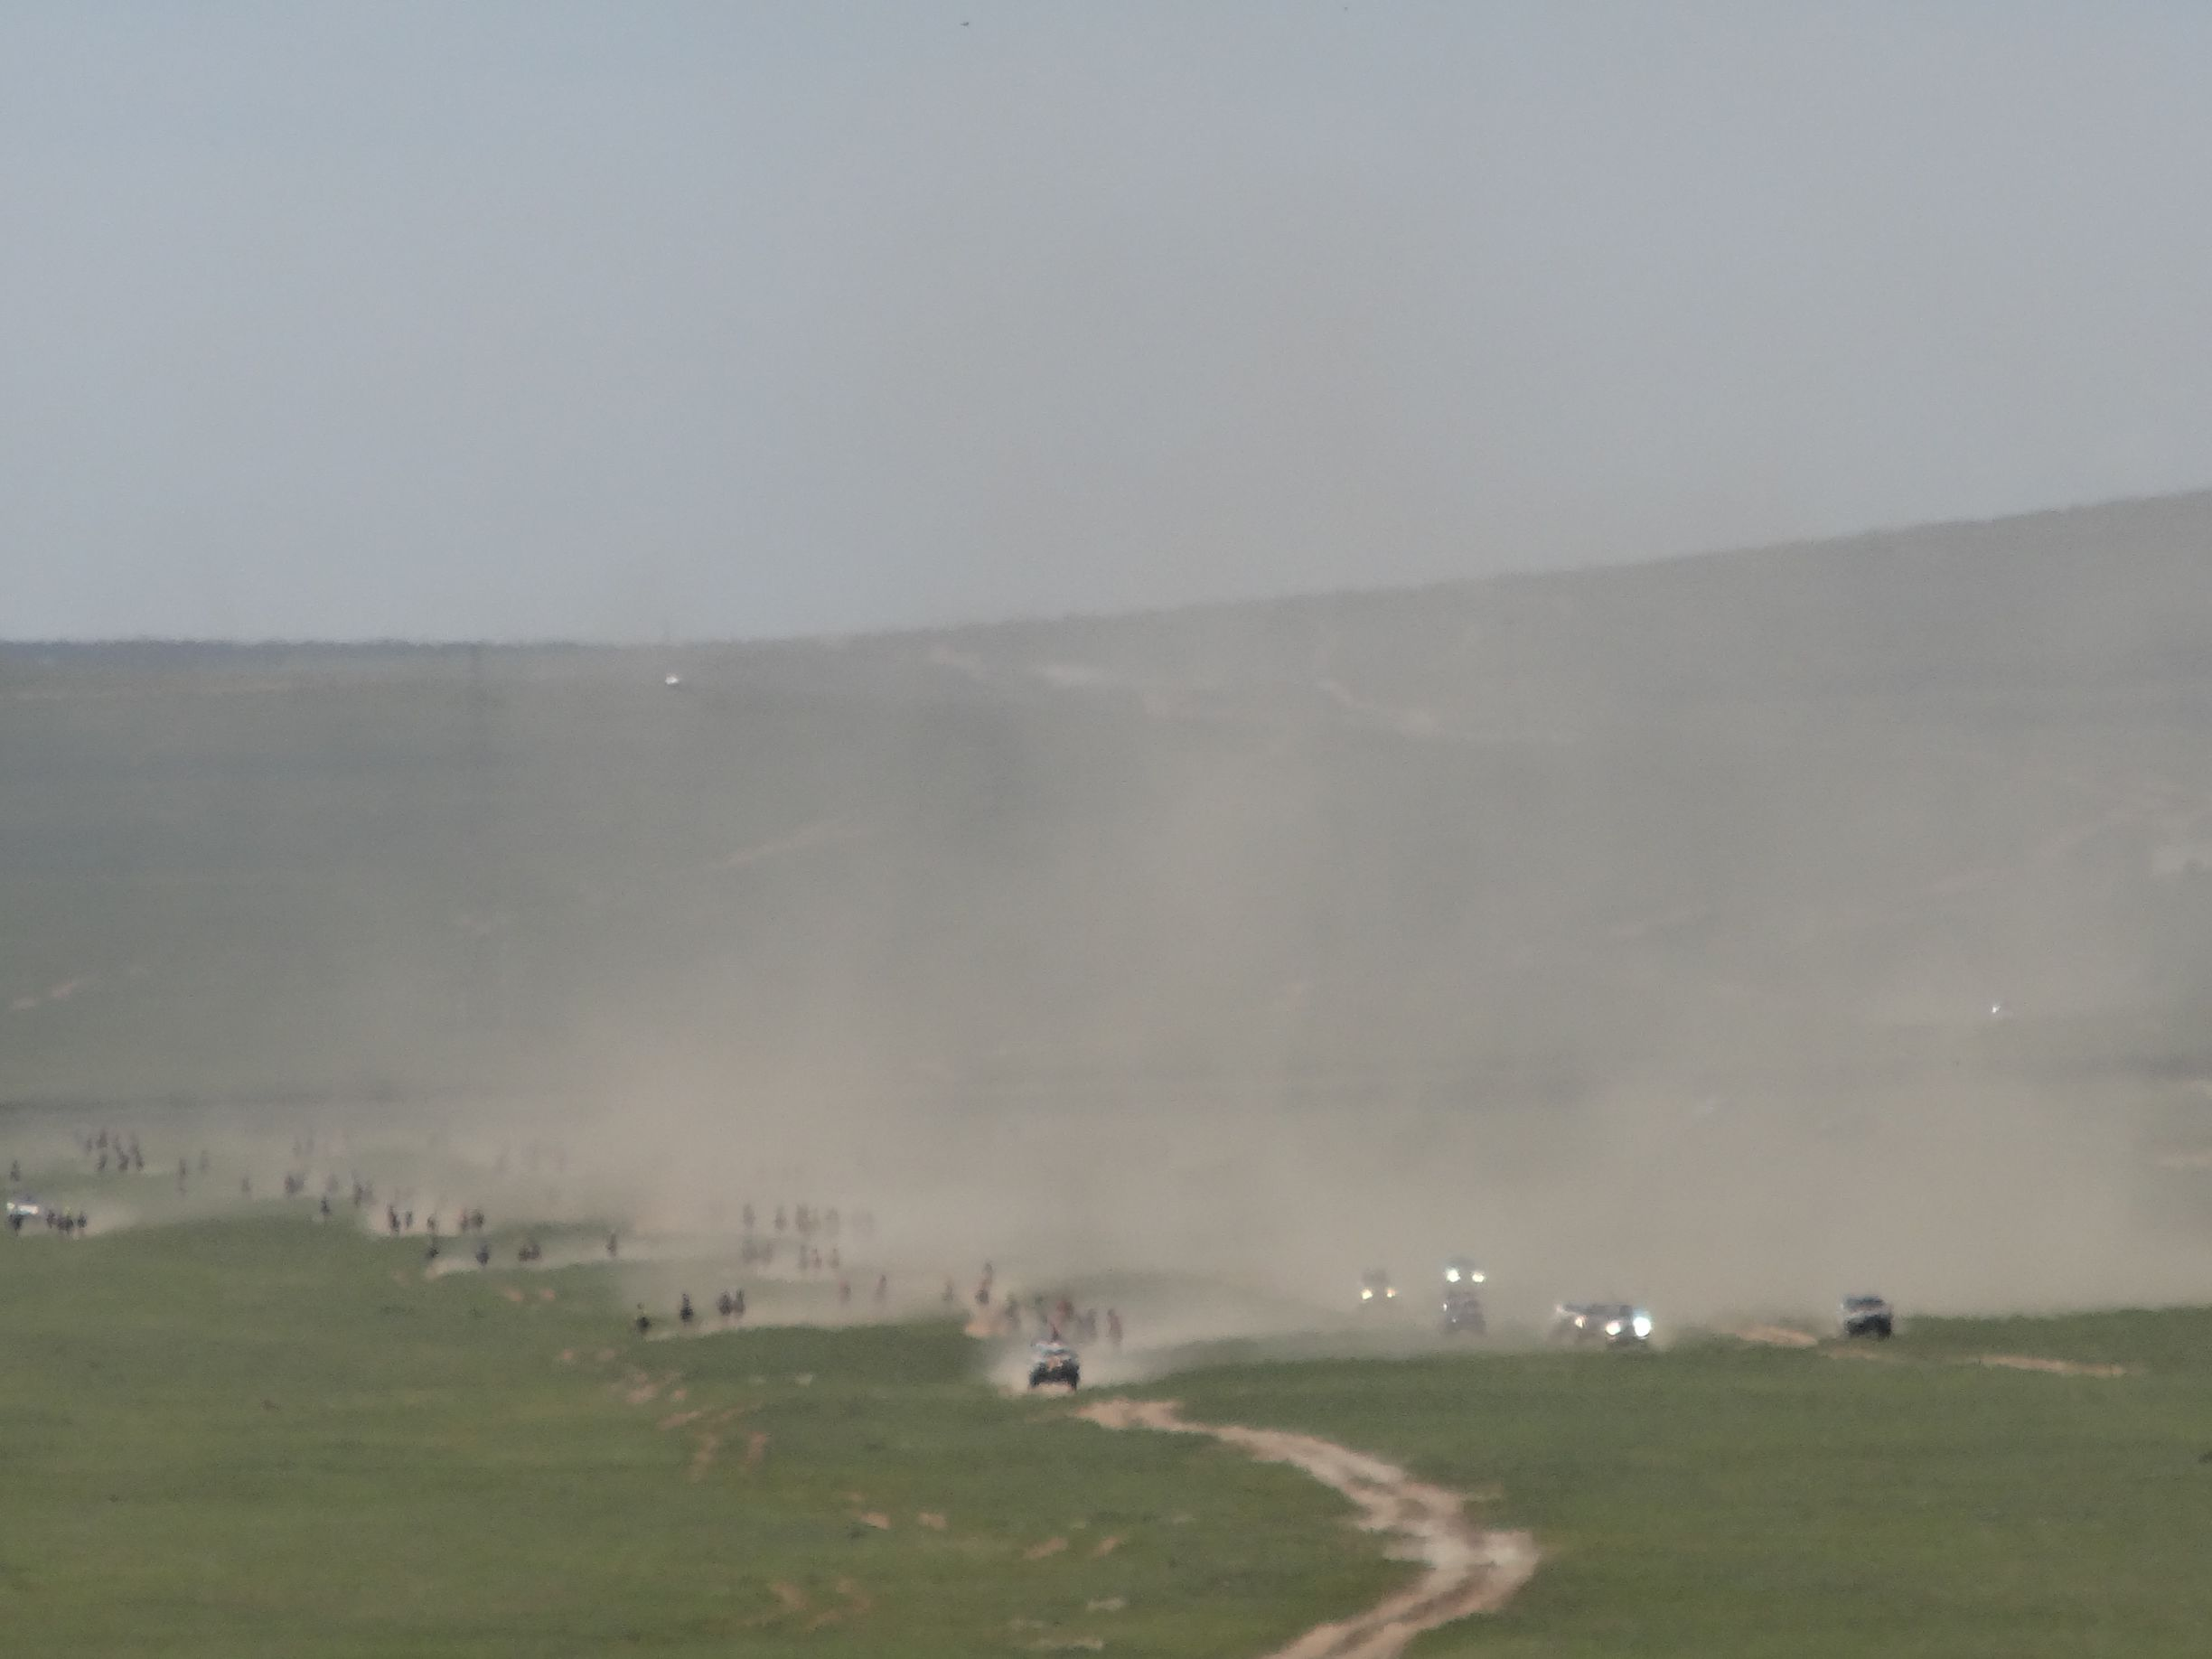 a little closer and the cloud of dust reveals horses and 4WDs